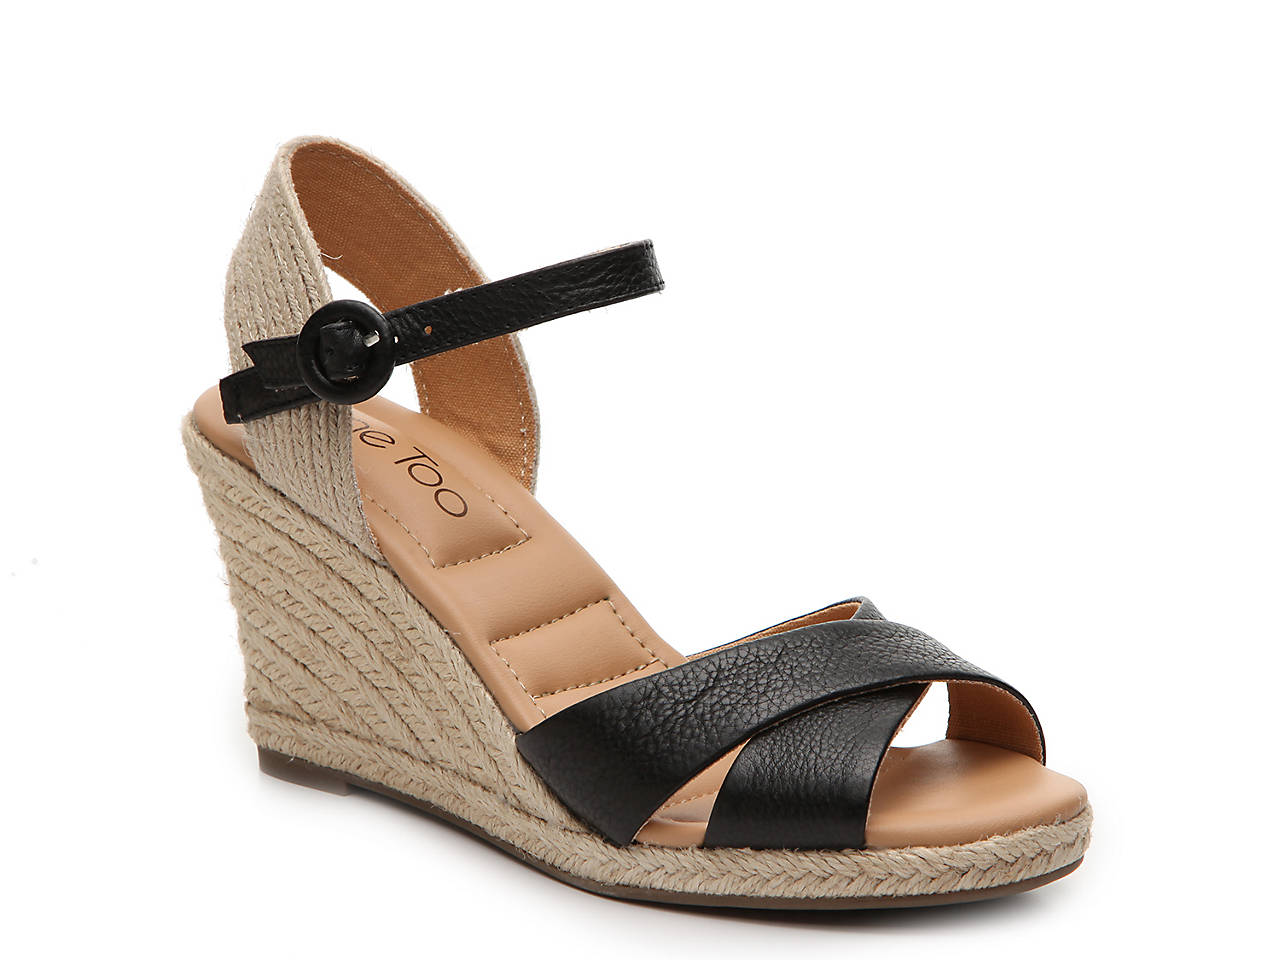 751a2f16f1 Me Too Bettina Espadrille Wedge Sandal Men s Shoes